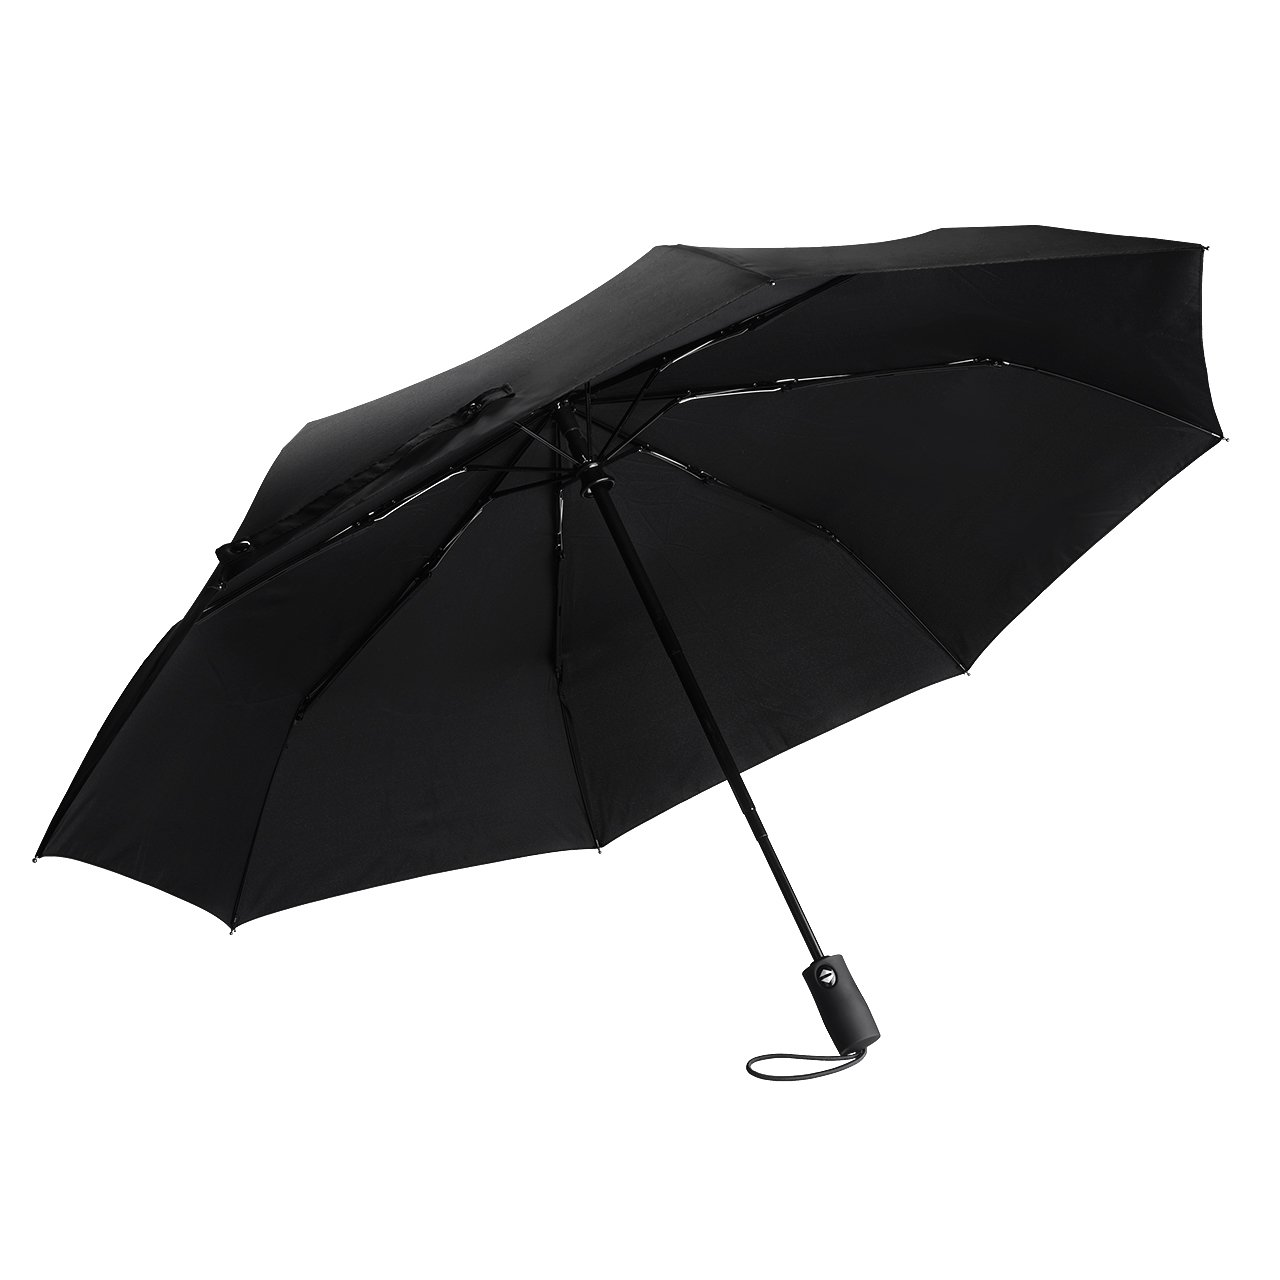 TopElek Compact Umbrella, Lifetime Replacement Guarantee, Auto Open & Close Travel Folding Umbrella with Reinforced 9 Ribs, Windproof Fast Drying Umbrella, Slip-Proof Handle for Easy Carry, Black 632423578172